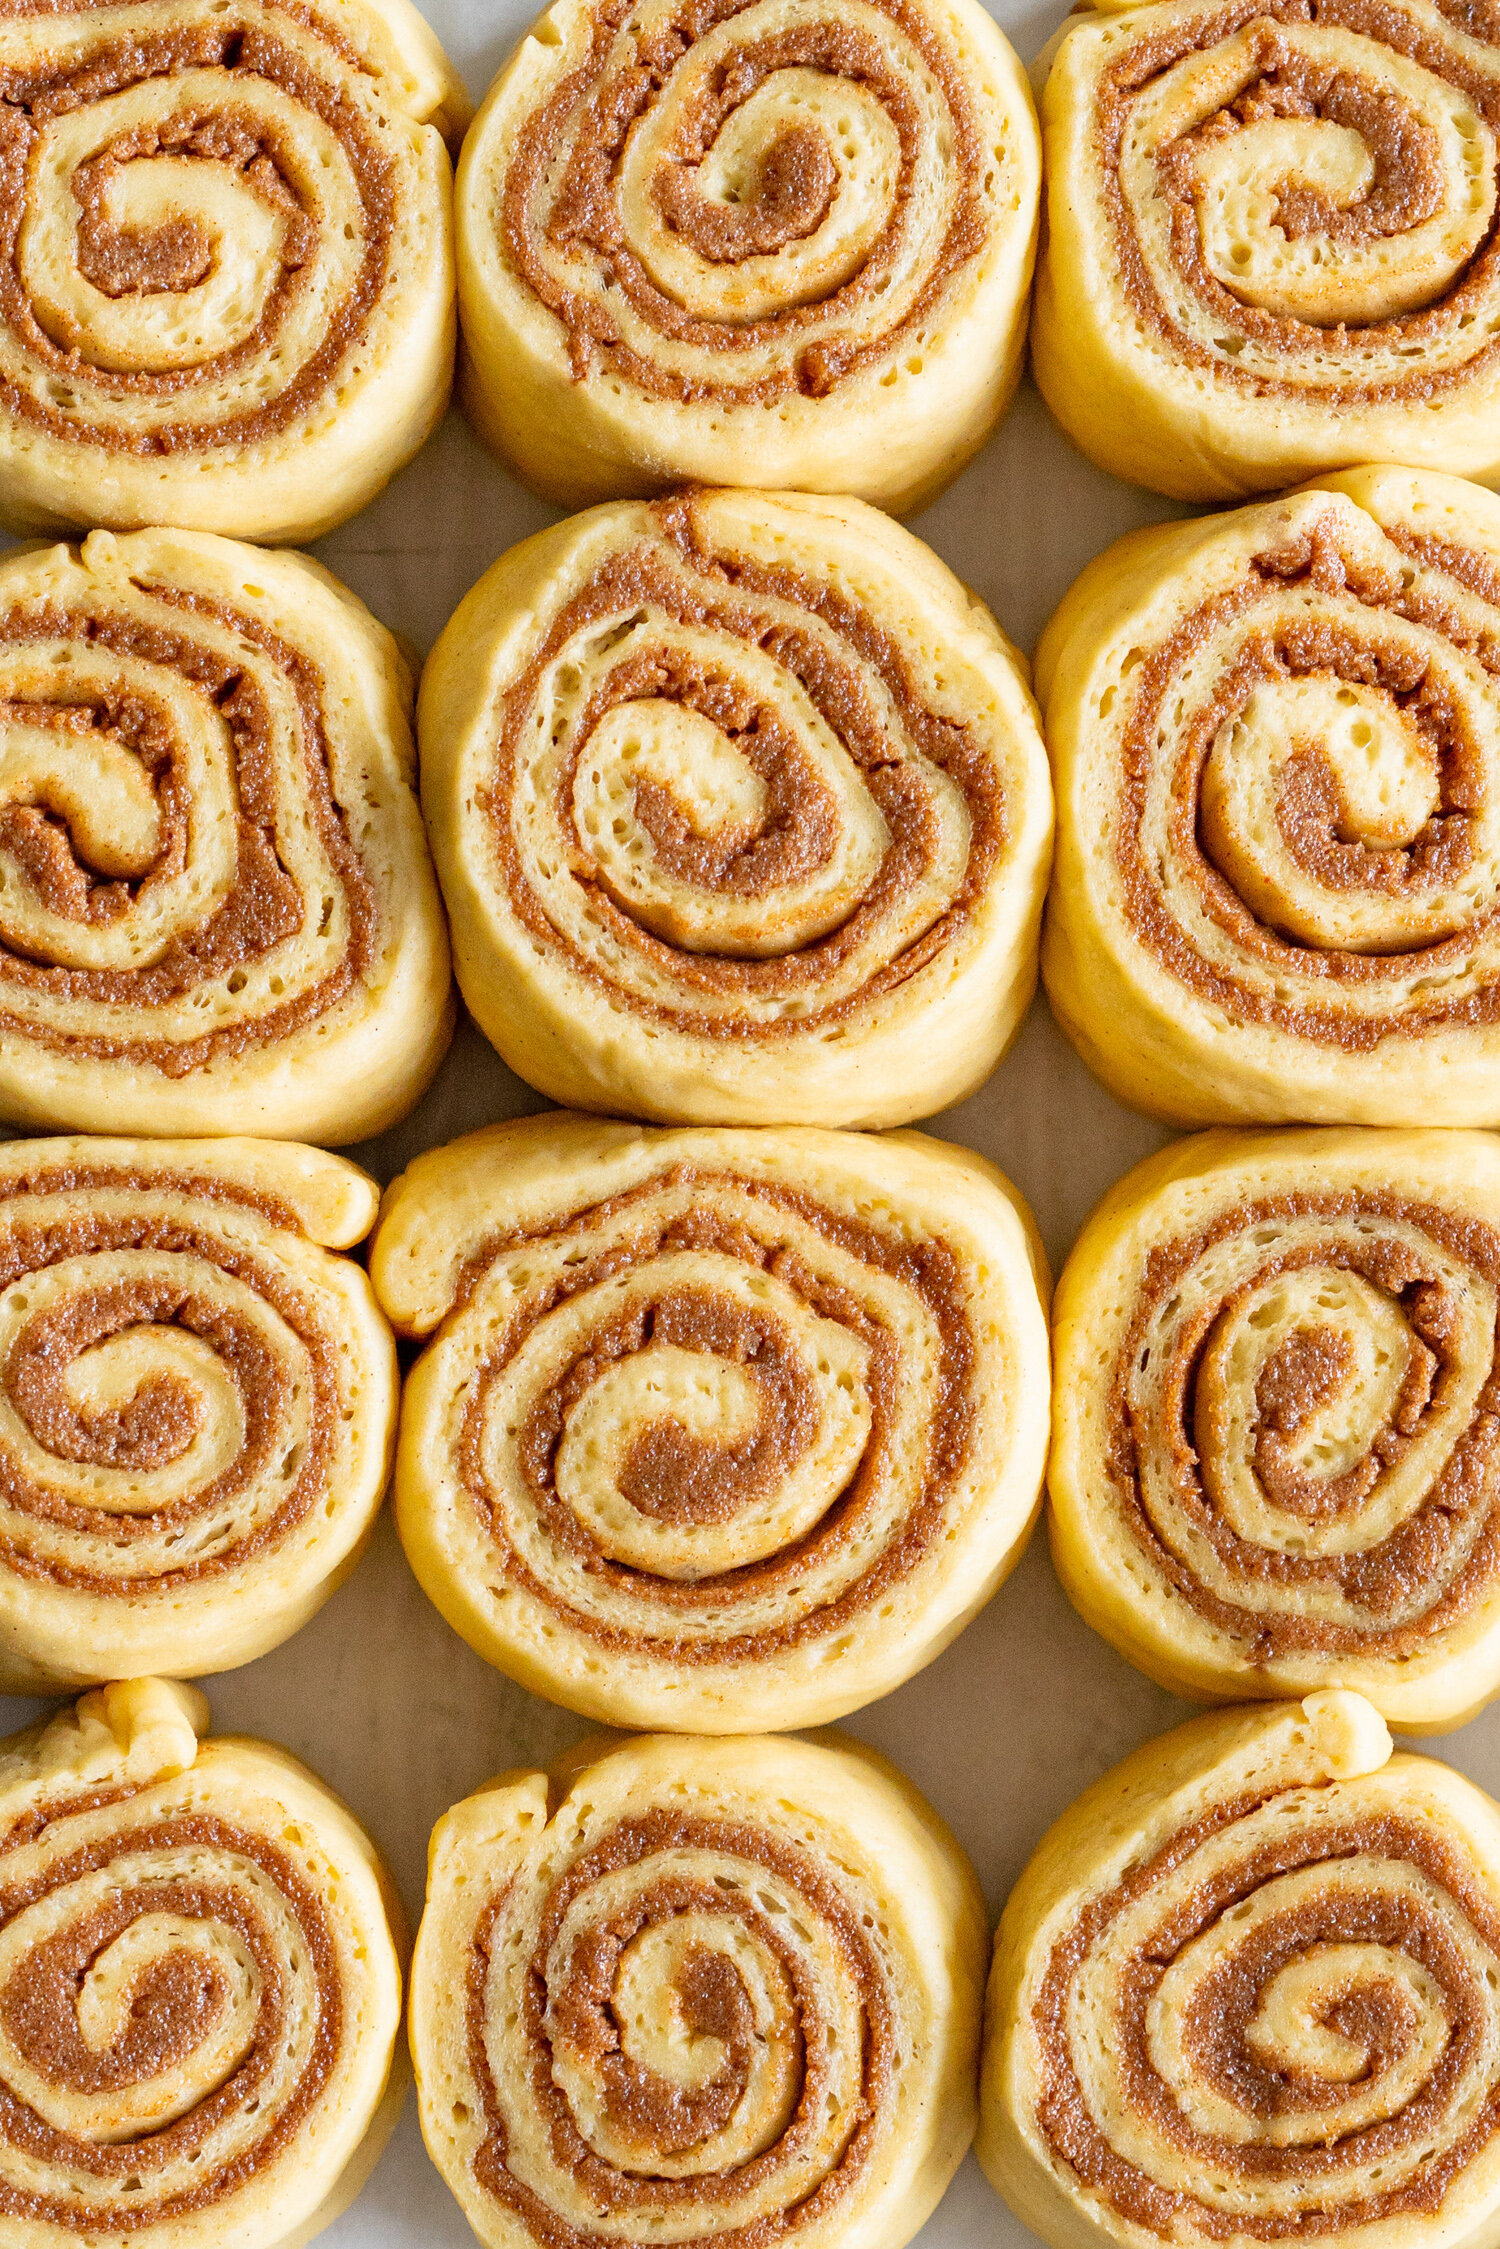 Brown Butter Cinnamon Rolls with Brown Butter Cream Cheese Frosting. Fluffy Brioche is filled with a spiced brown sugar and brown butter cinnamon filing, then rolled up and formed into perfect rolls. The rolls are then baked to perfection, and slathered in a brown butter cream cheese frosting, loaded up with specks of vanilla bean and brown butter. These are the perfect take on a cinnamon roll - the extra effort is well worth it! #brownbuttercinnamonroll #brownbutter #creamcheesefrosting